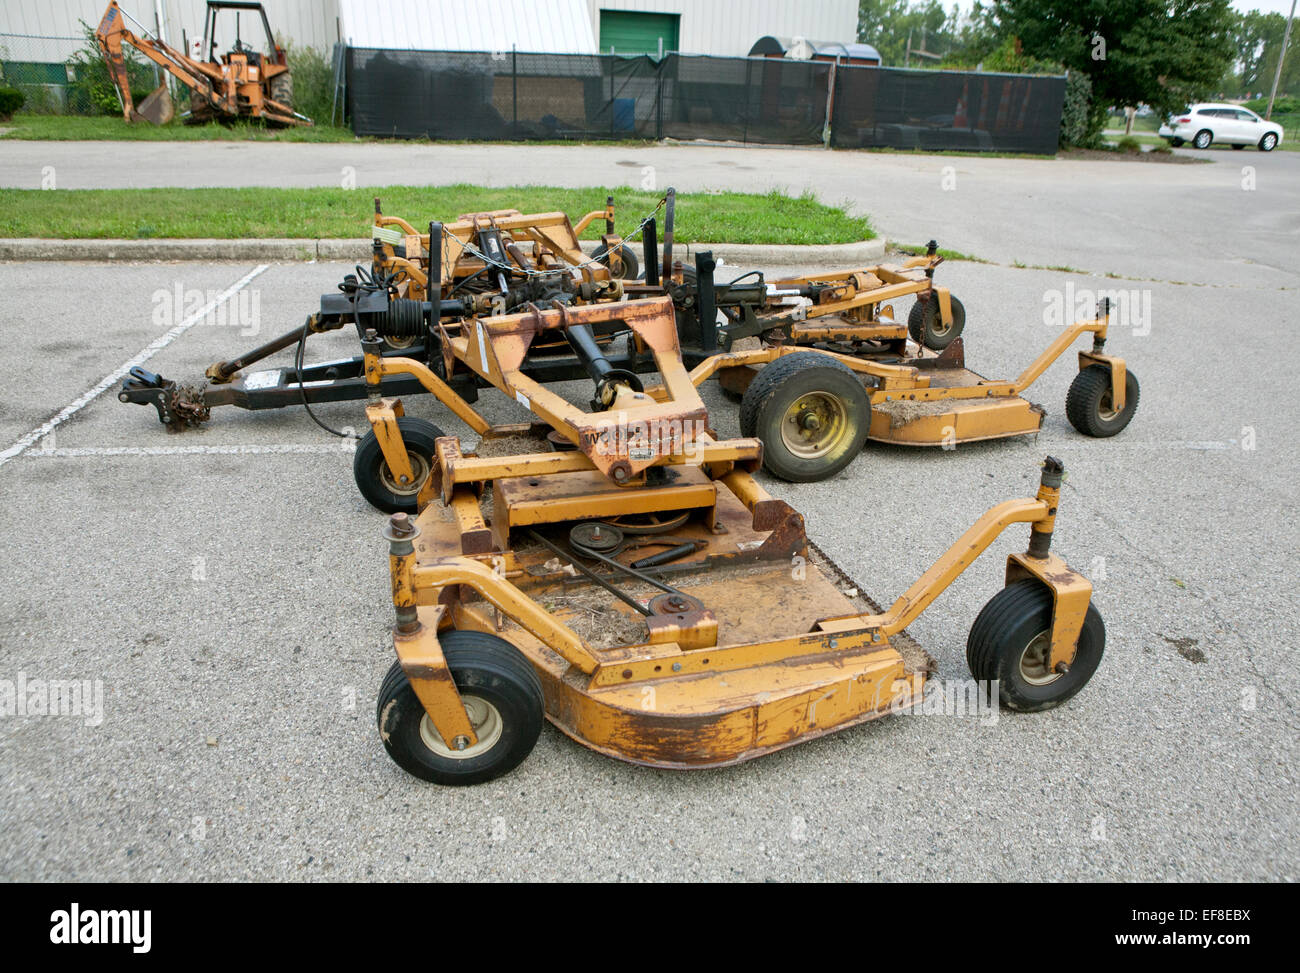 Large mower attachment for cutting large areas of grass. Stock Photo